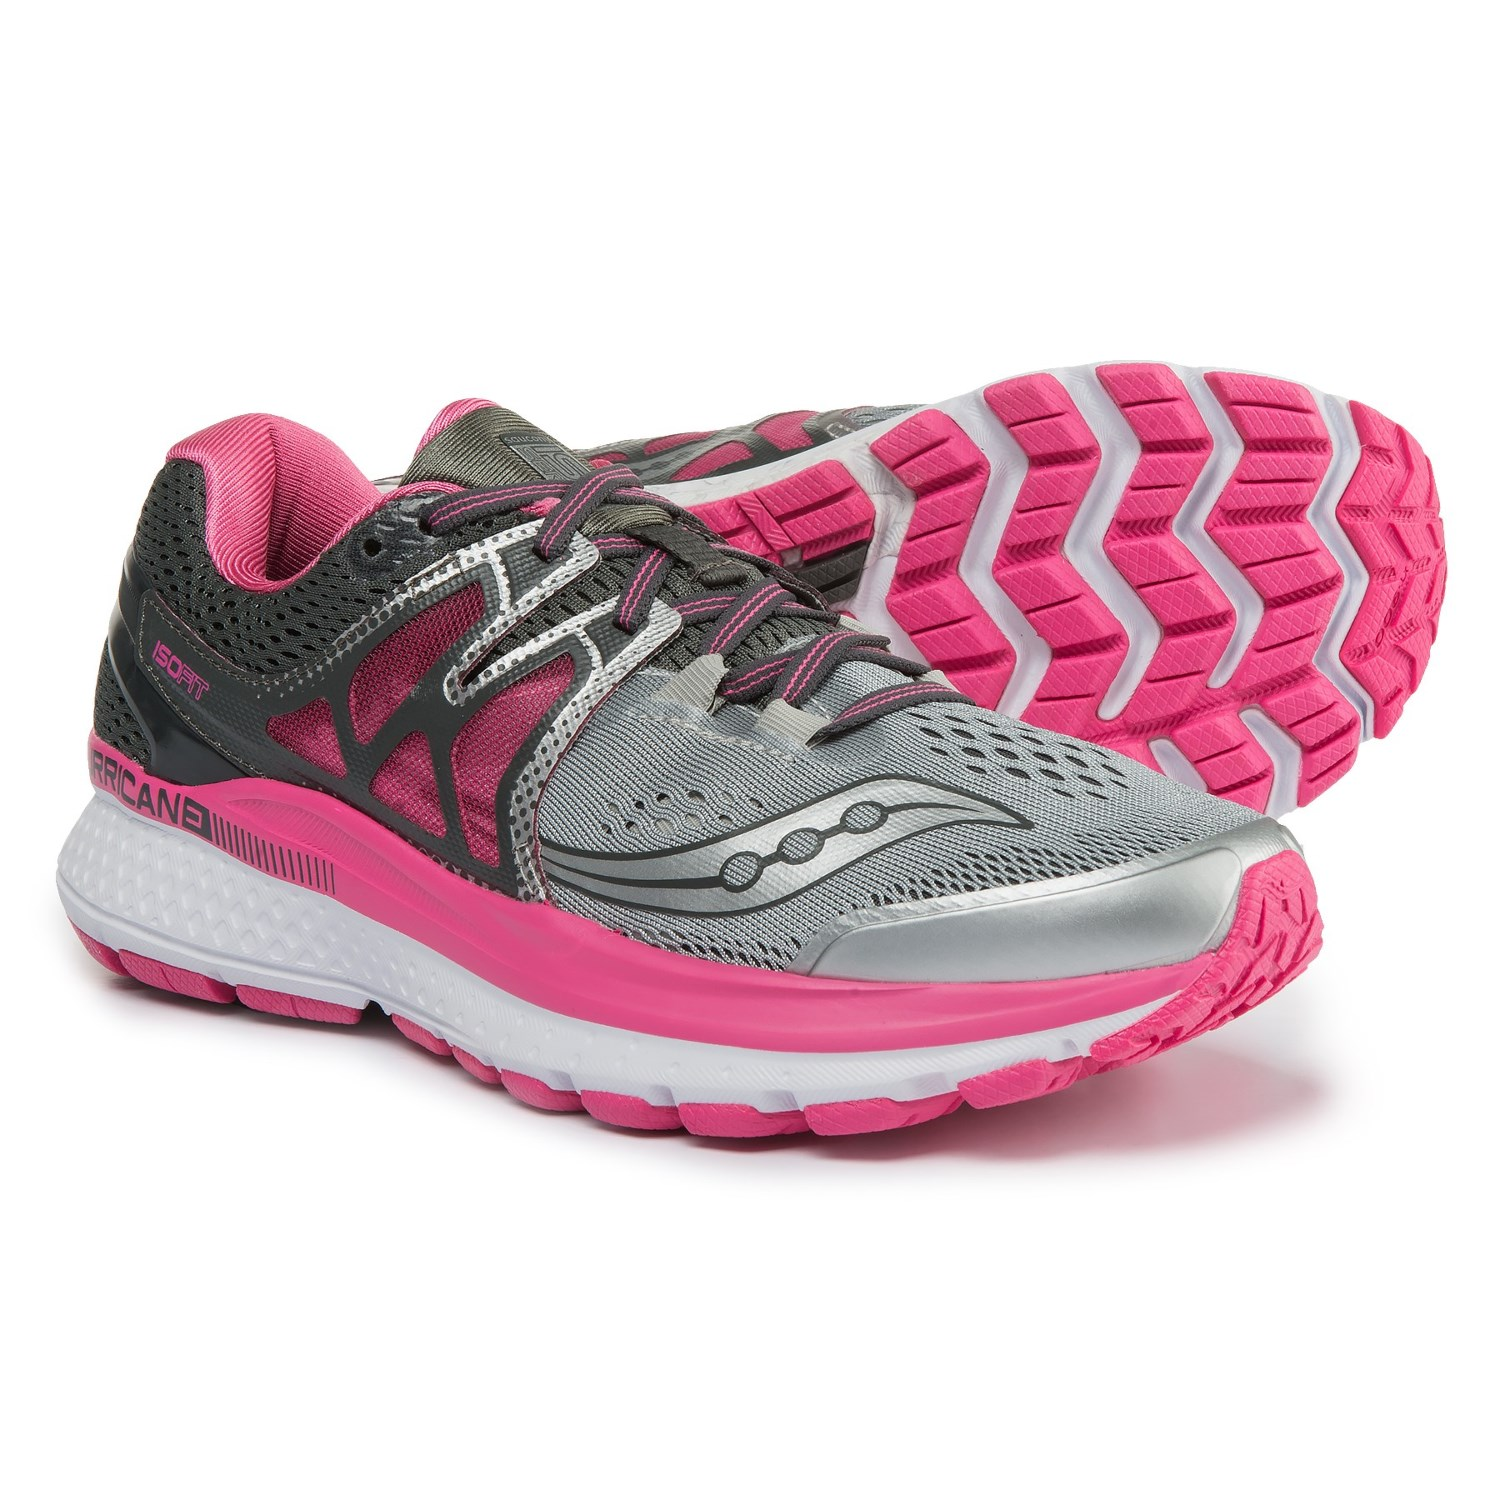 71583e9e88 Saucony Hurricane ISO 3 Running Shoes (For Women)